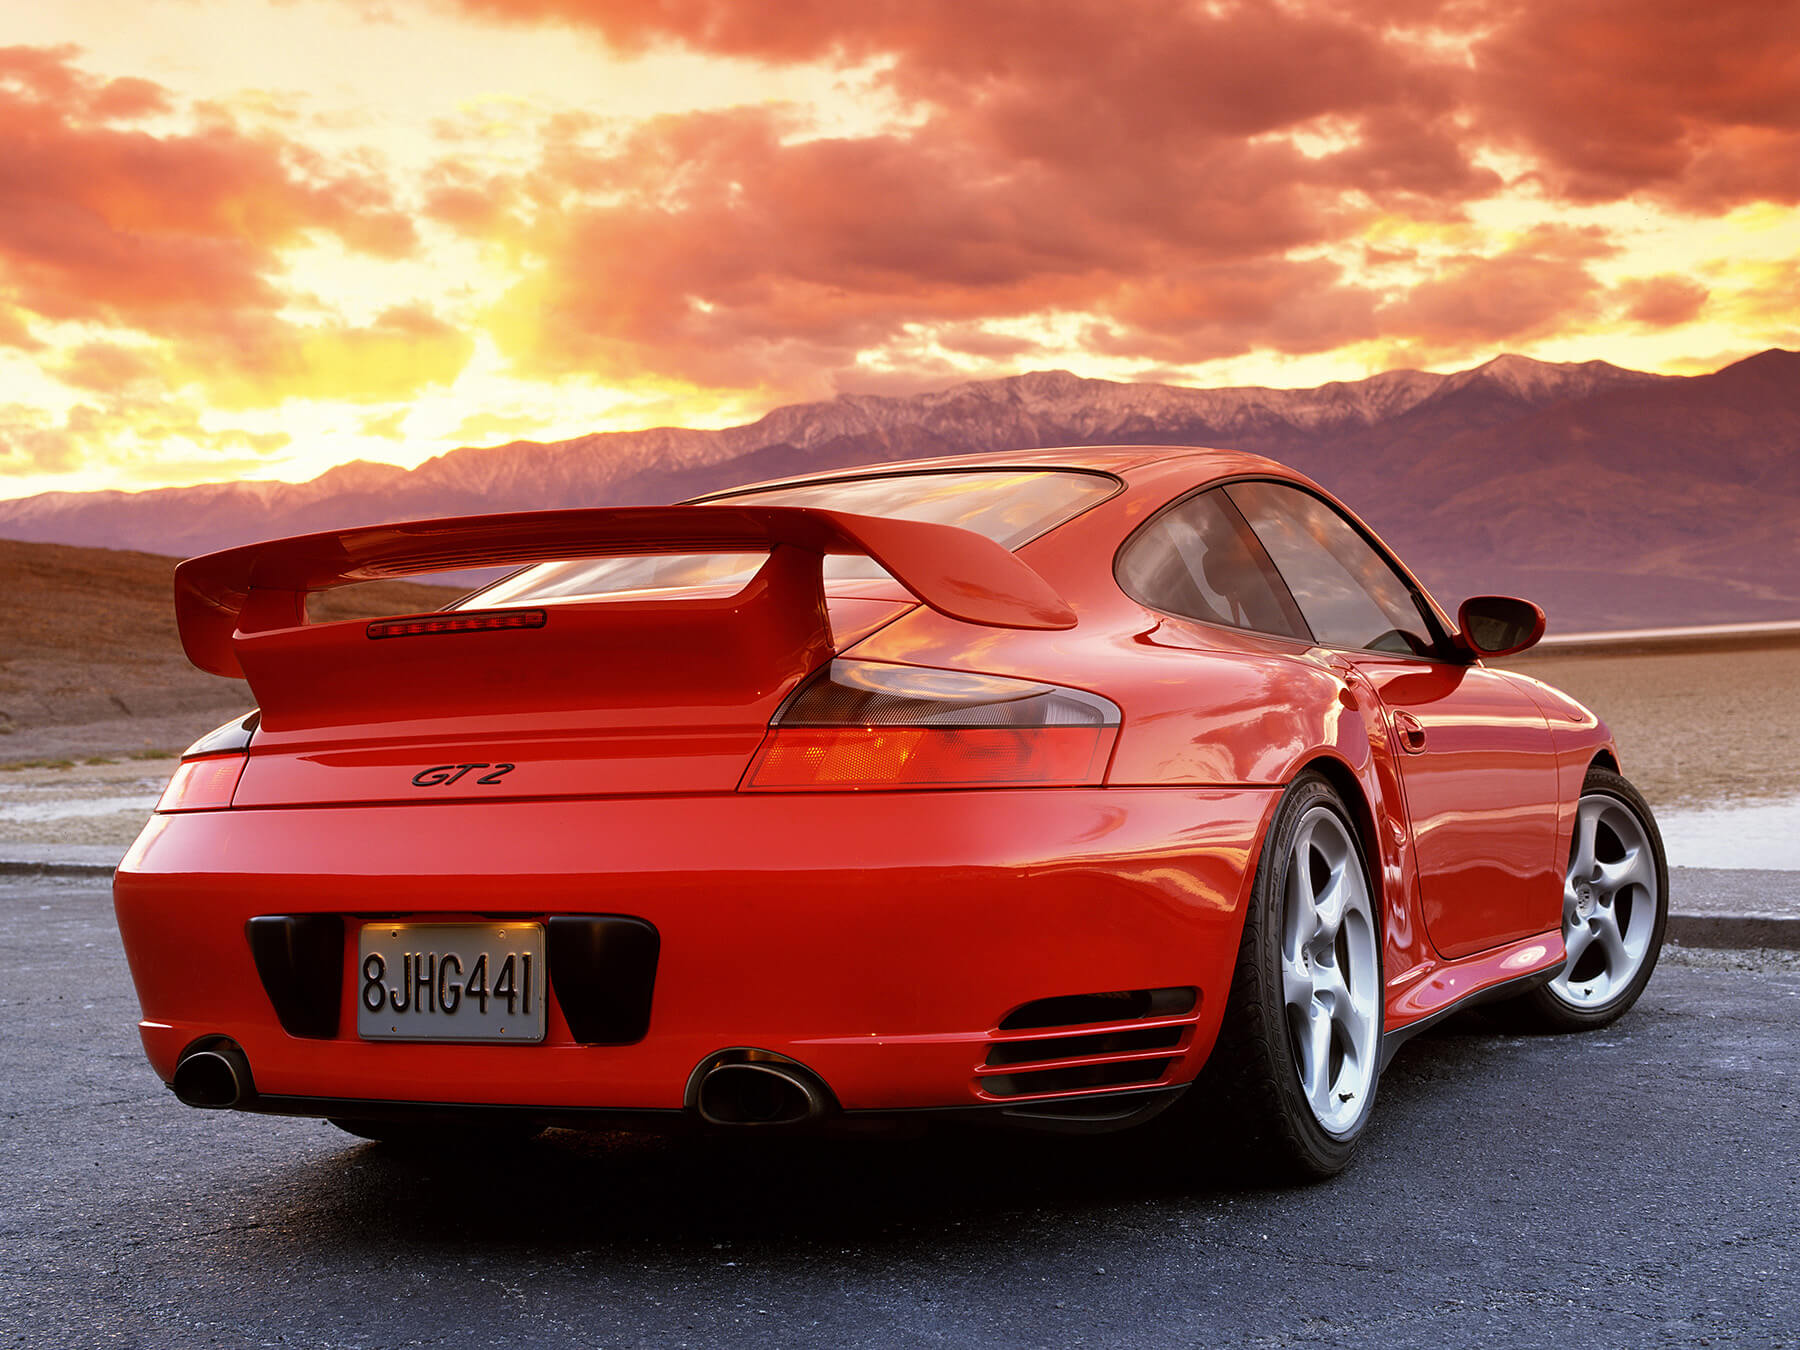 Red Porsche GT2 in the sunset